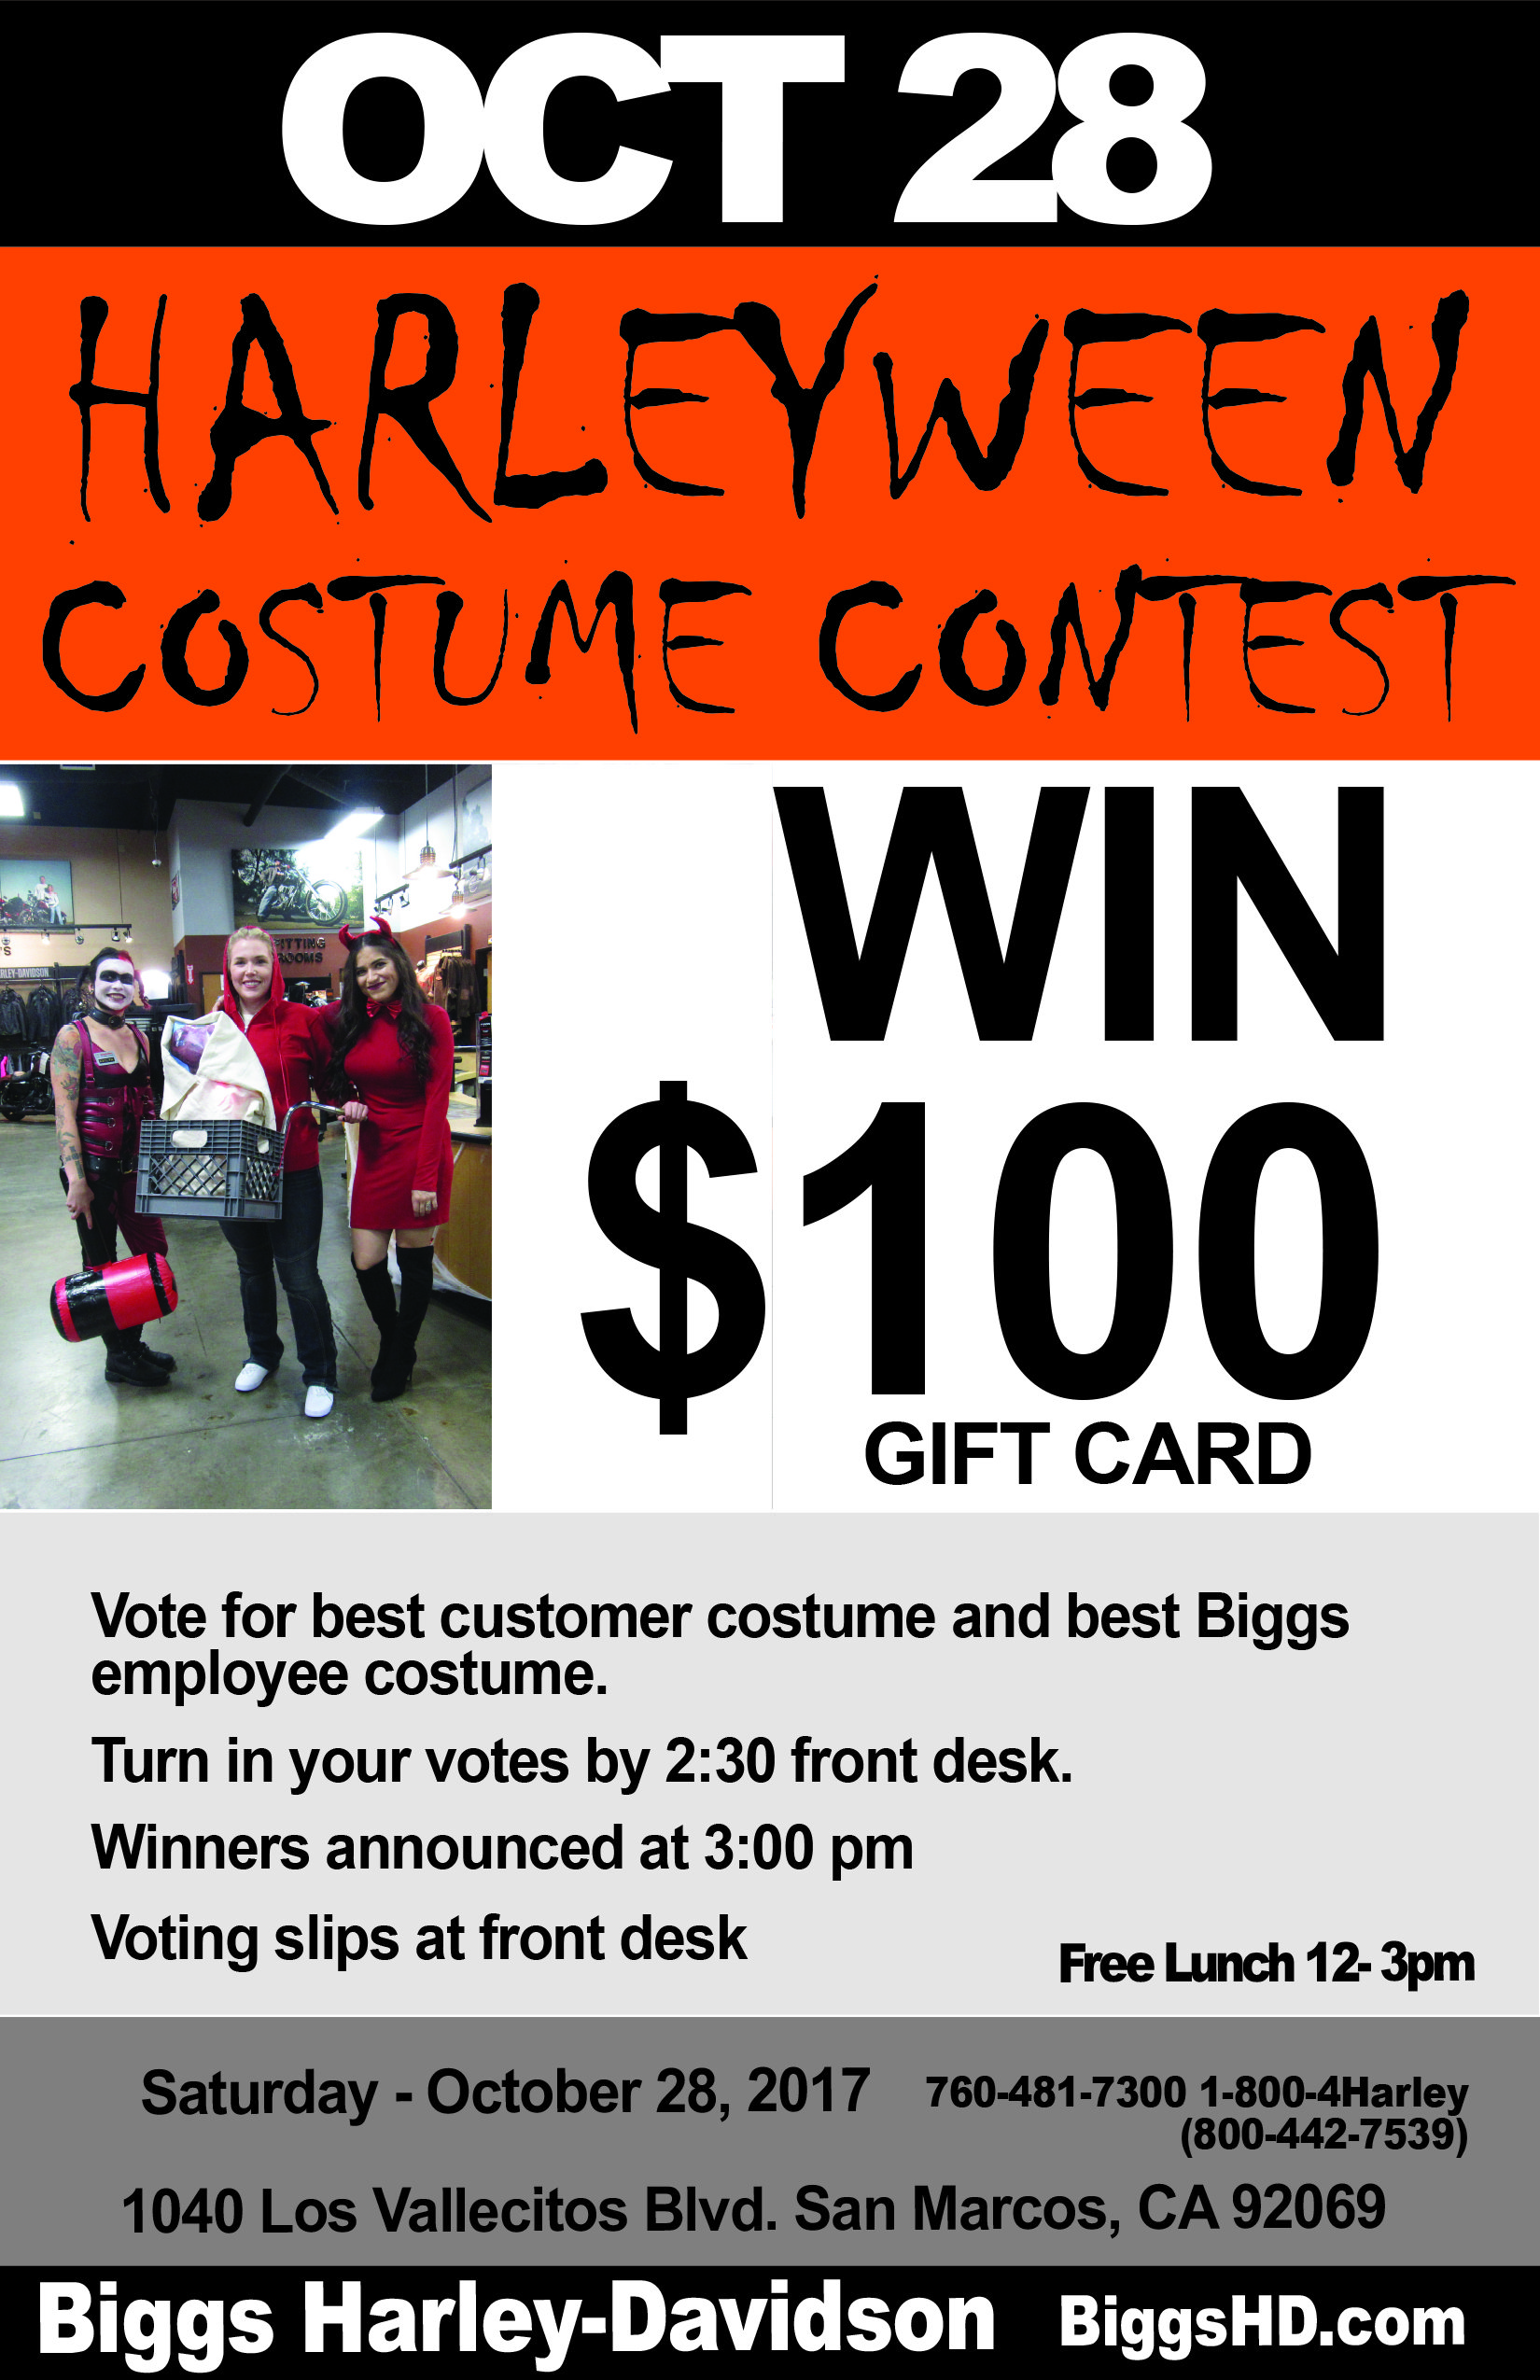 Biggs HarleyWeen Costume Contest